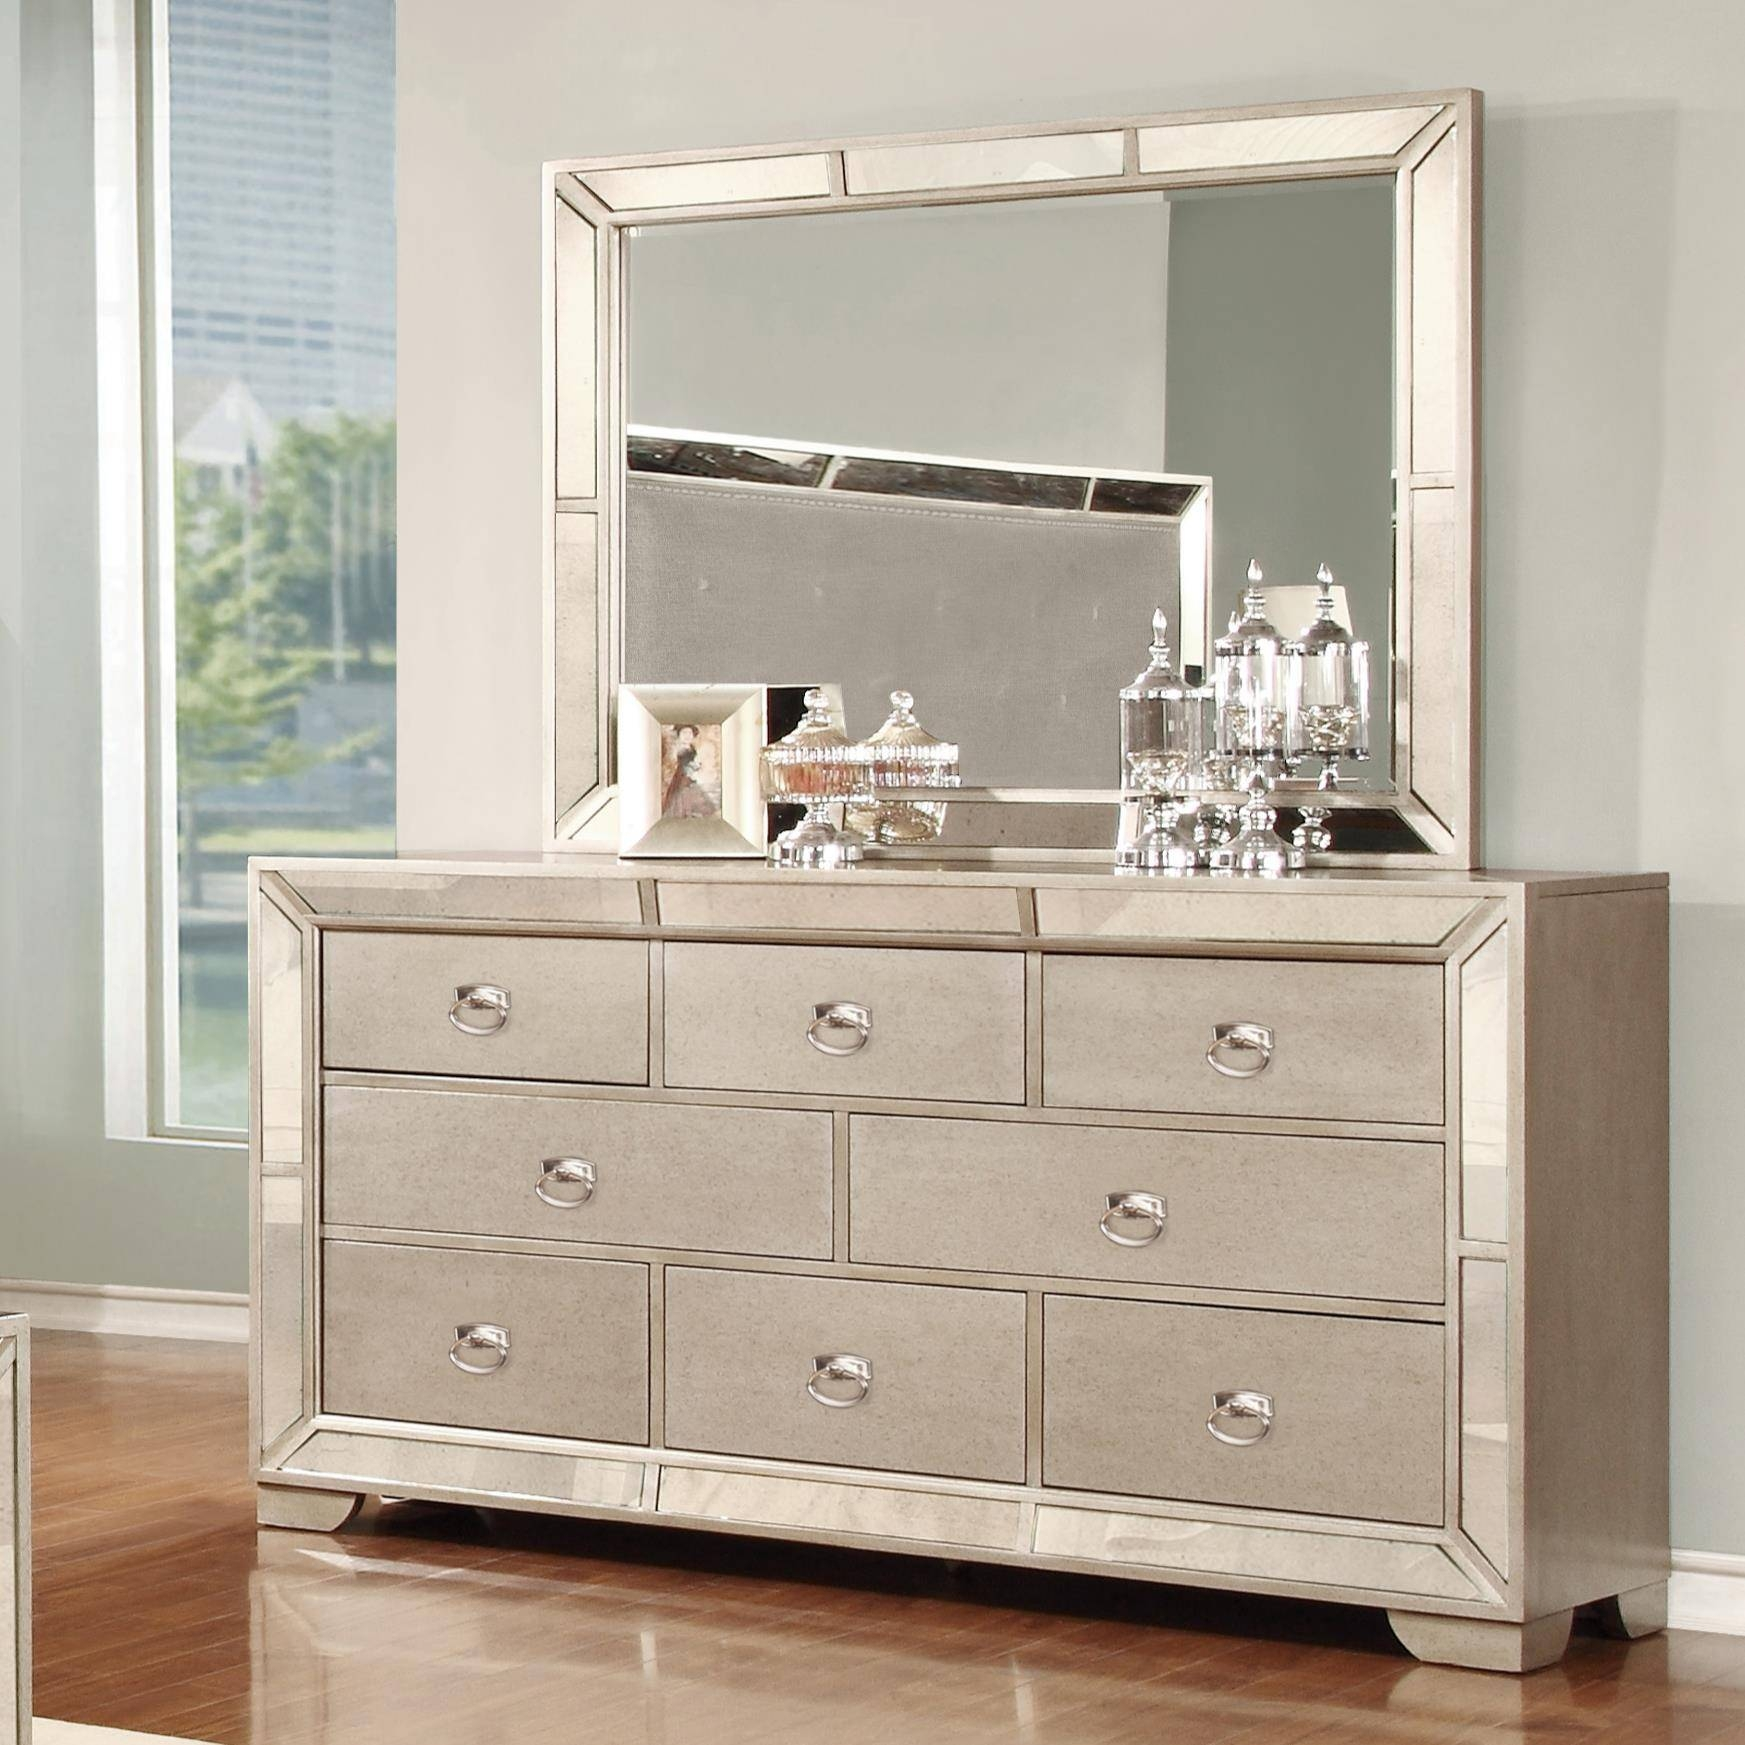 Lifestyle Glitzy 7 Drawer Dresser And Mirror Set - Royal Furniture regarding Glitzy Mirrors (Image 22 of 25)